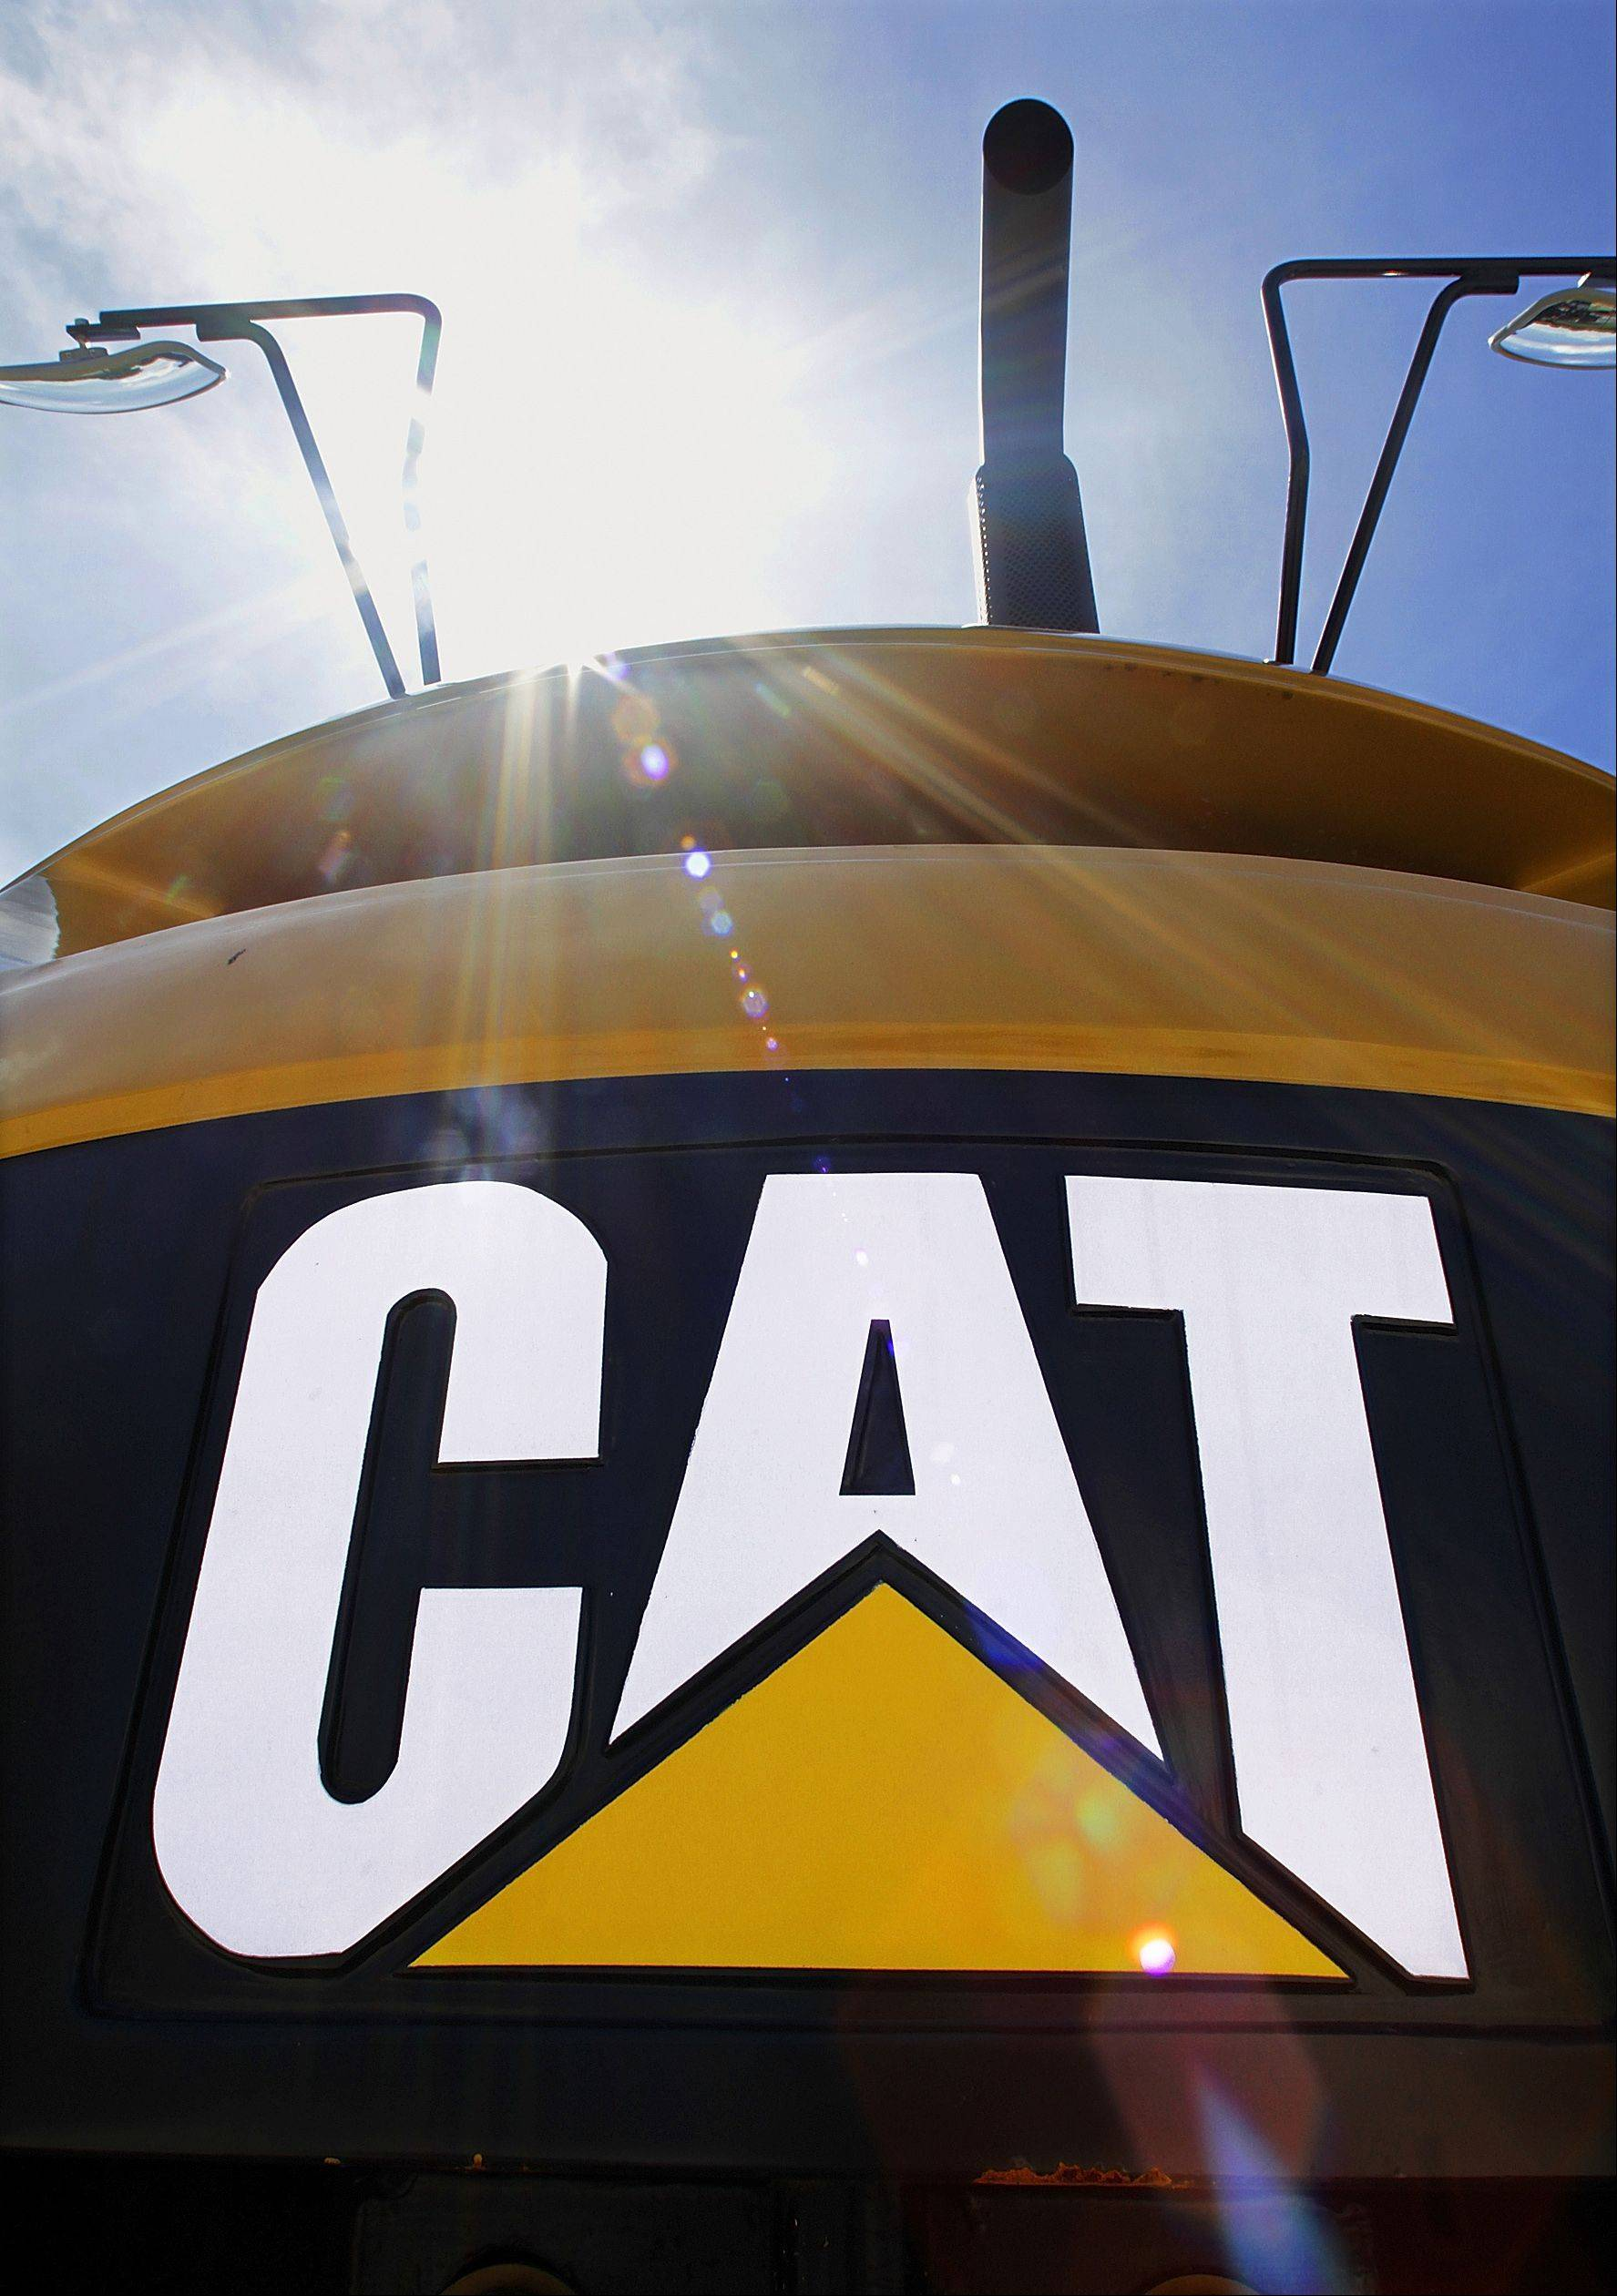 Caterpillar Inc., the world�s largest maker of construction and mining equipment, had its obligations cut by $135 million as part of a settlement reached relating to its purchase of ERA Mining Machinery Ltd.